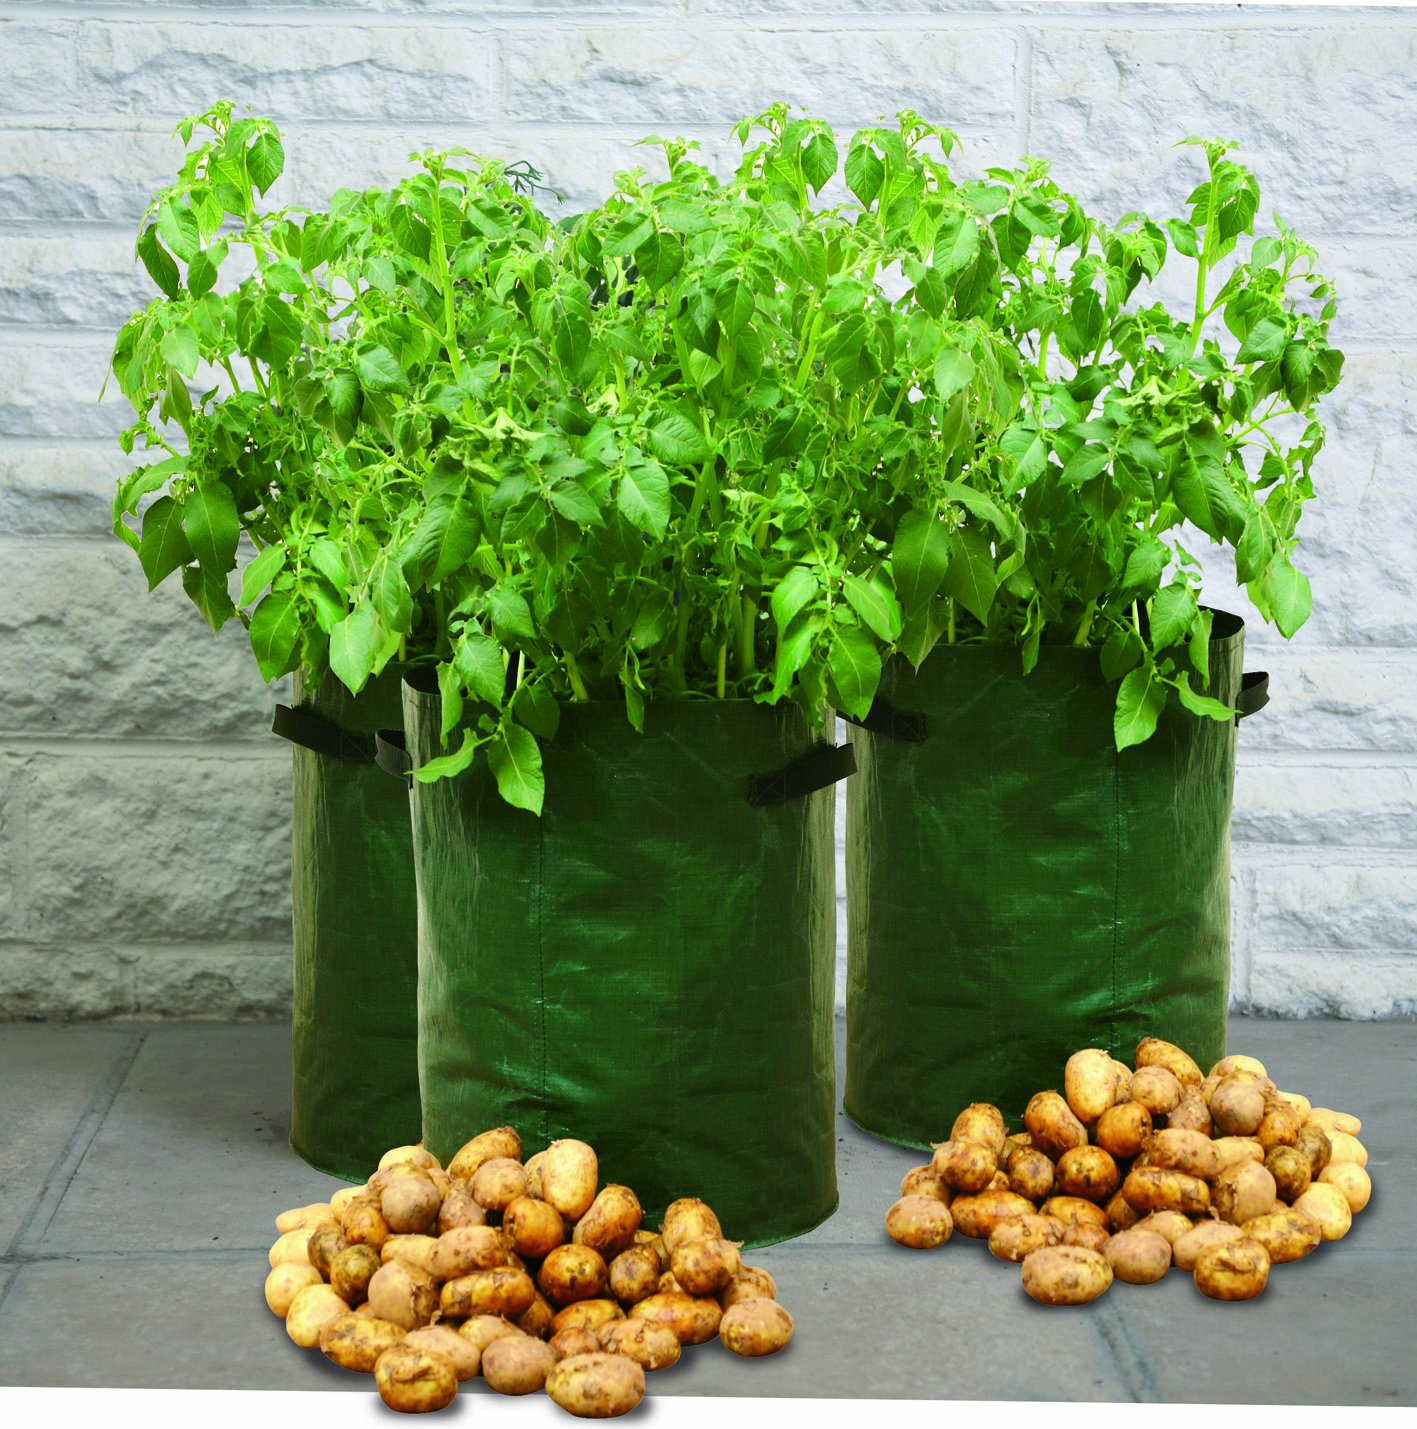 Amazon Tierra Garden 50 1040 Haxnicks Potato Patio Planter